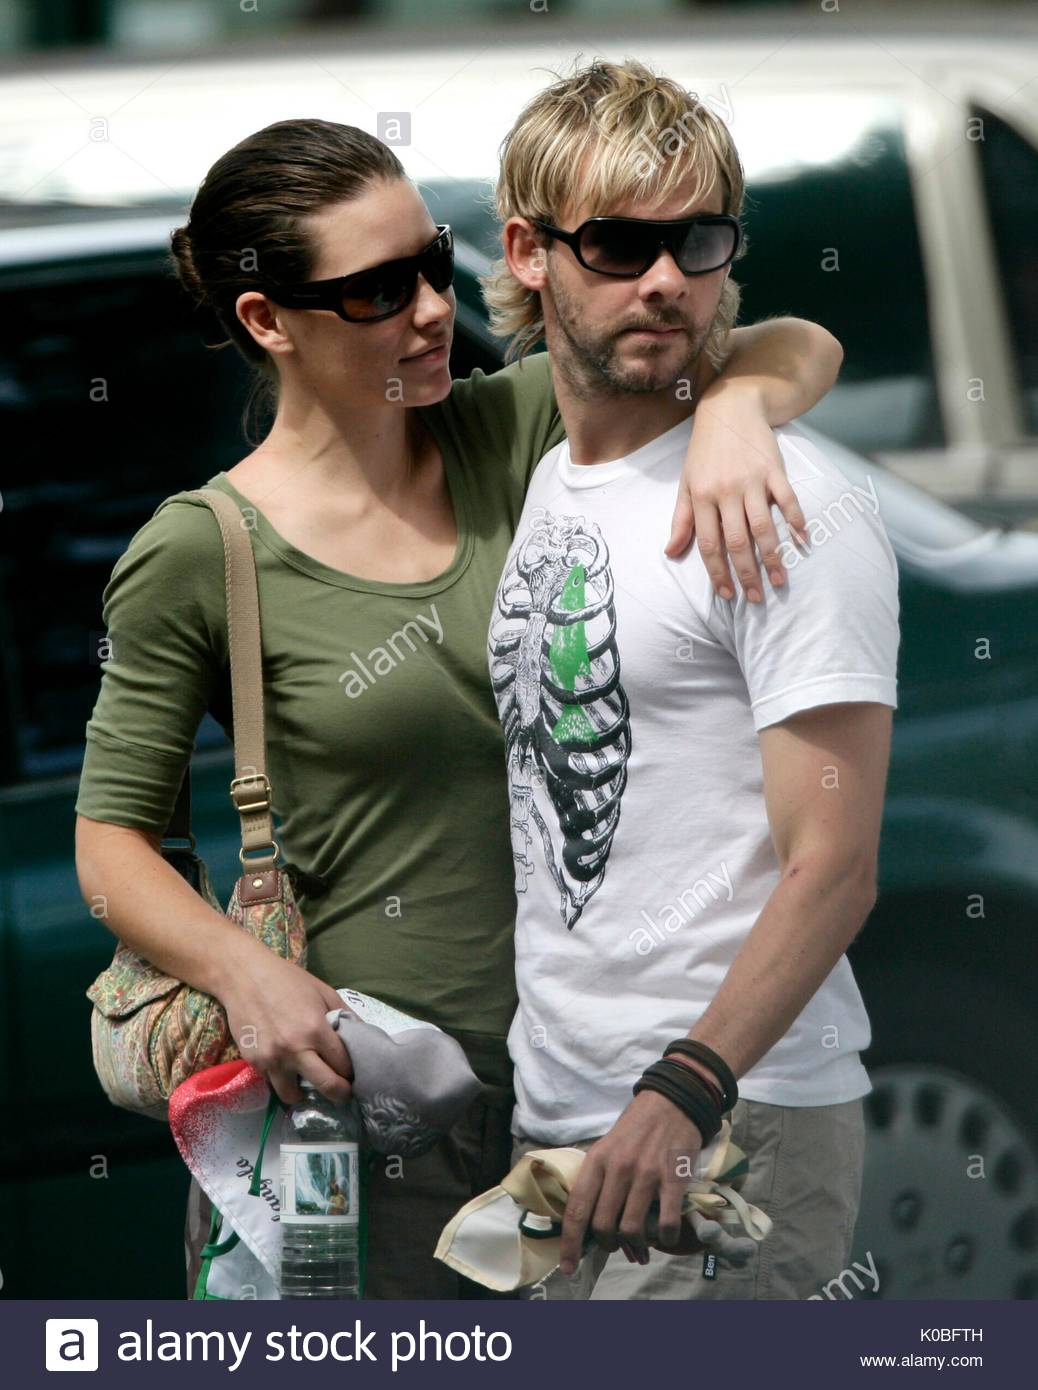 Dominic monaghan dating evangeline lily